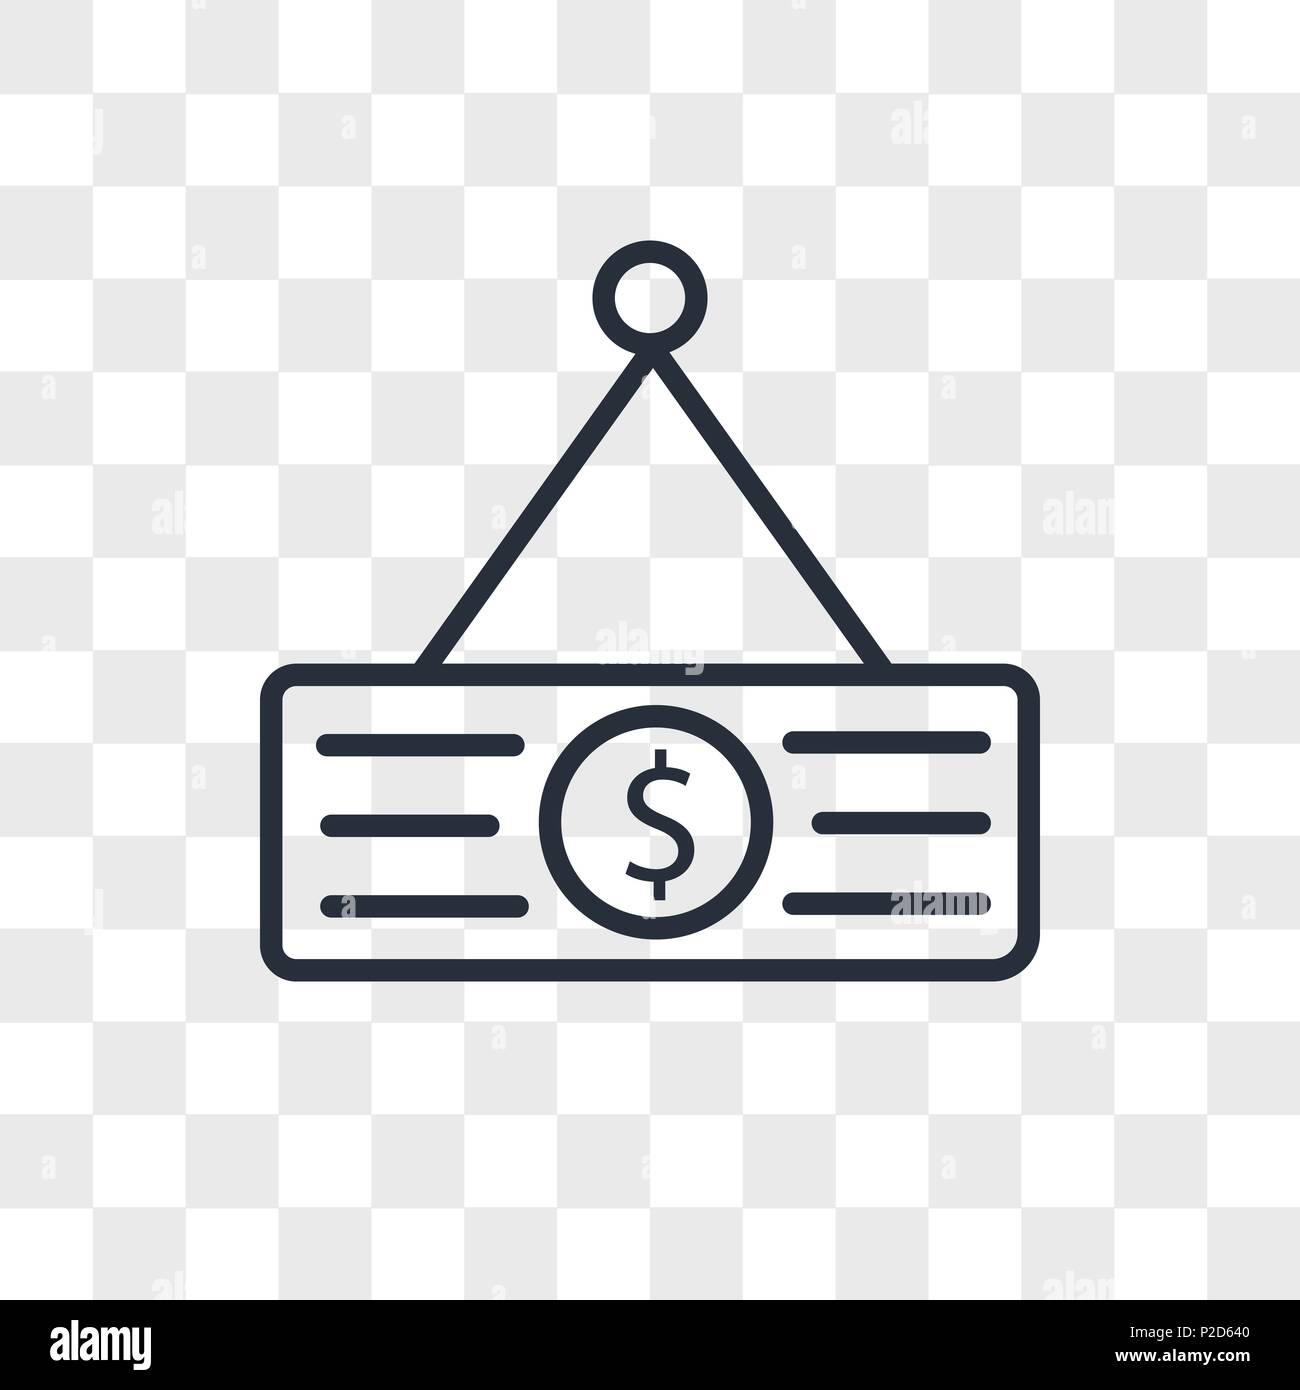 Price Tag Vector Icon Isolated On Transparent Background Price Tag Logo Concept Stock Vector Image Art Alamy